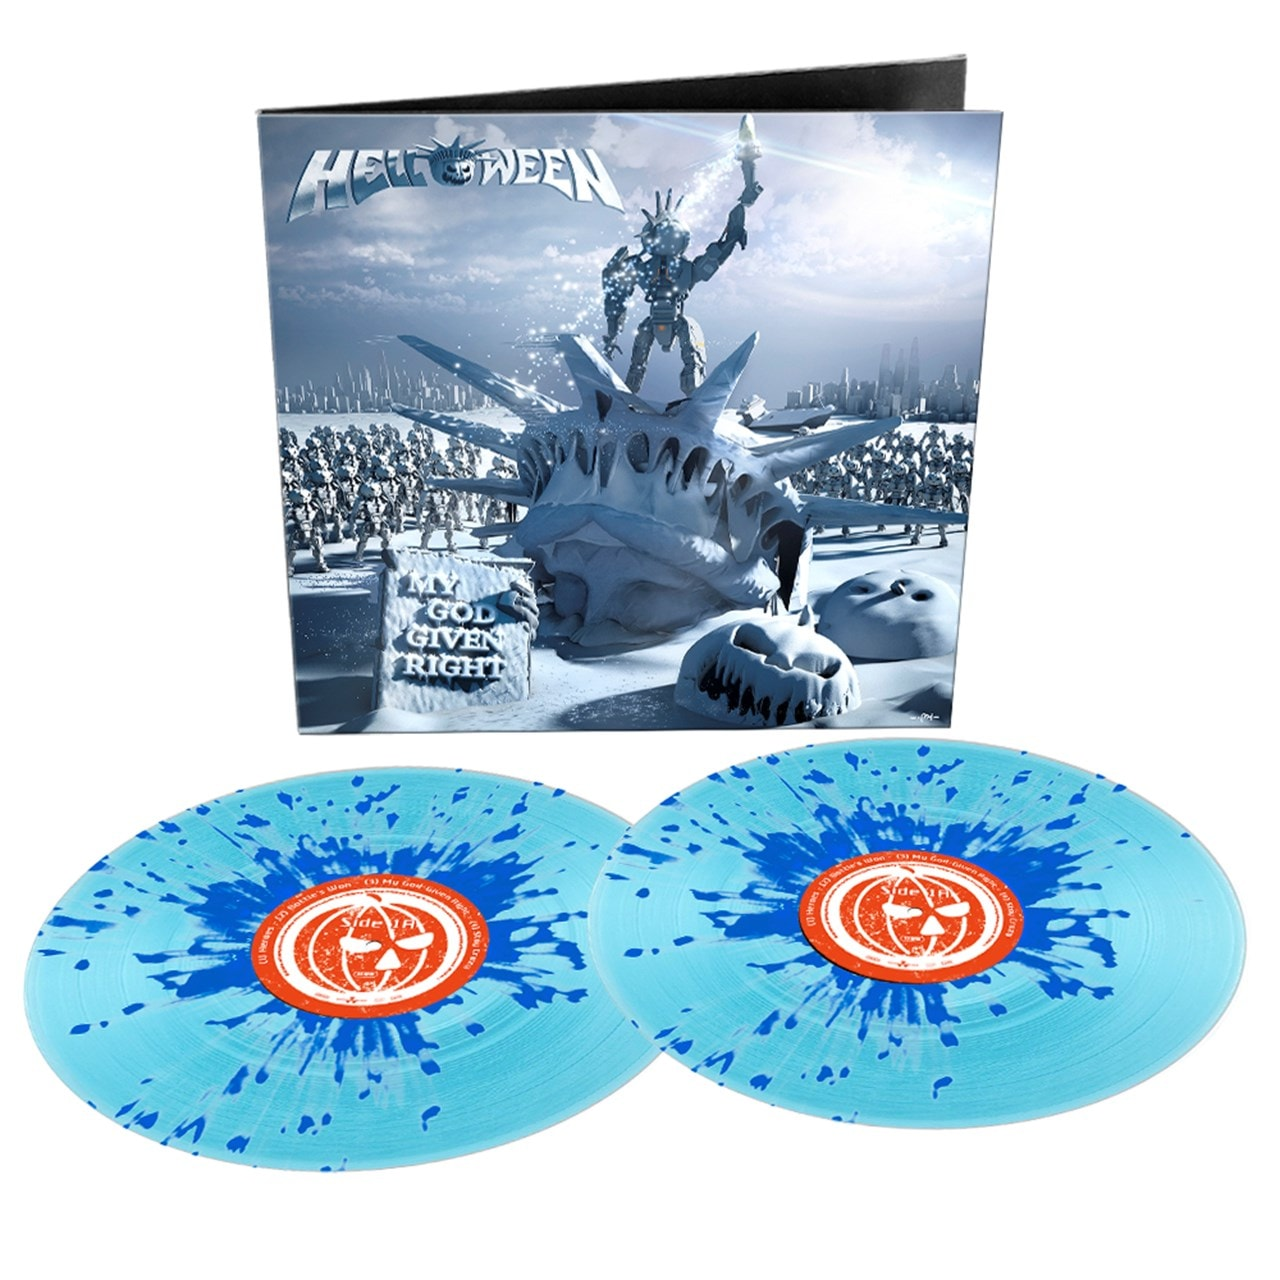 My God-given Right Limited Edition Gatefold Blue Vinyl - 1